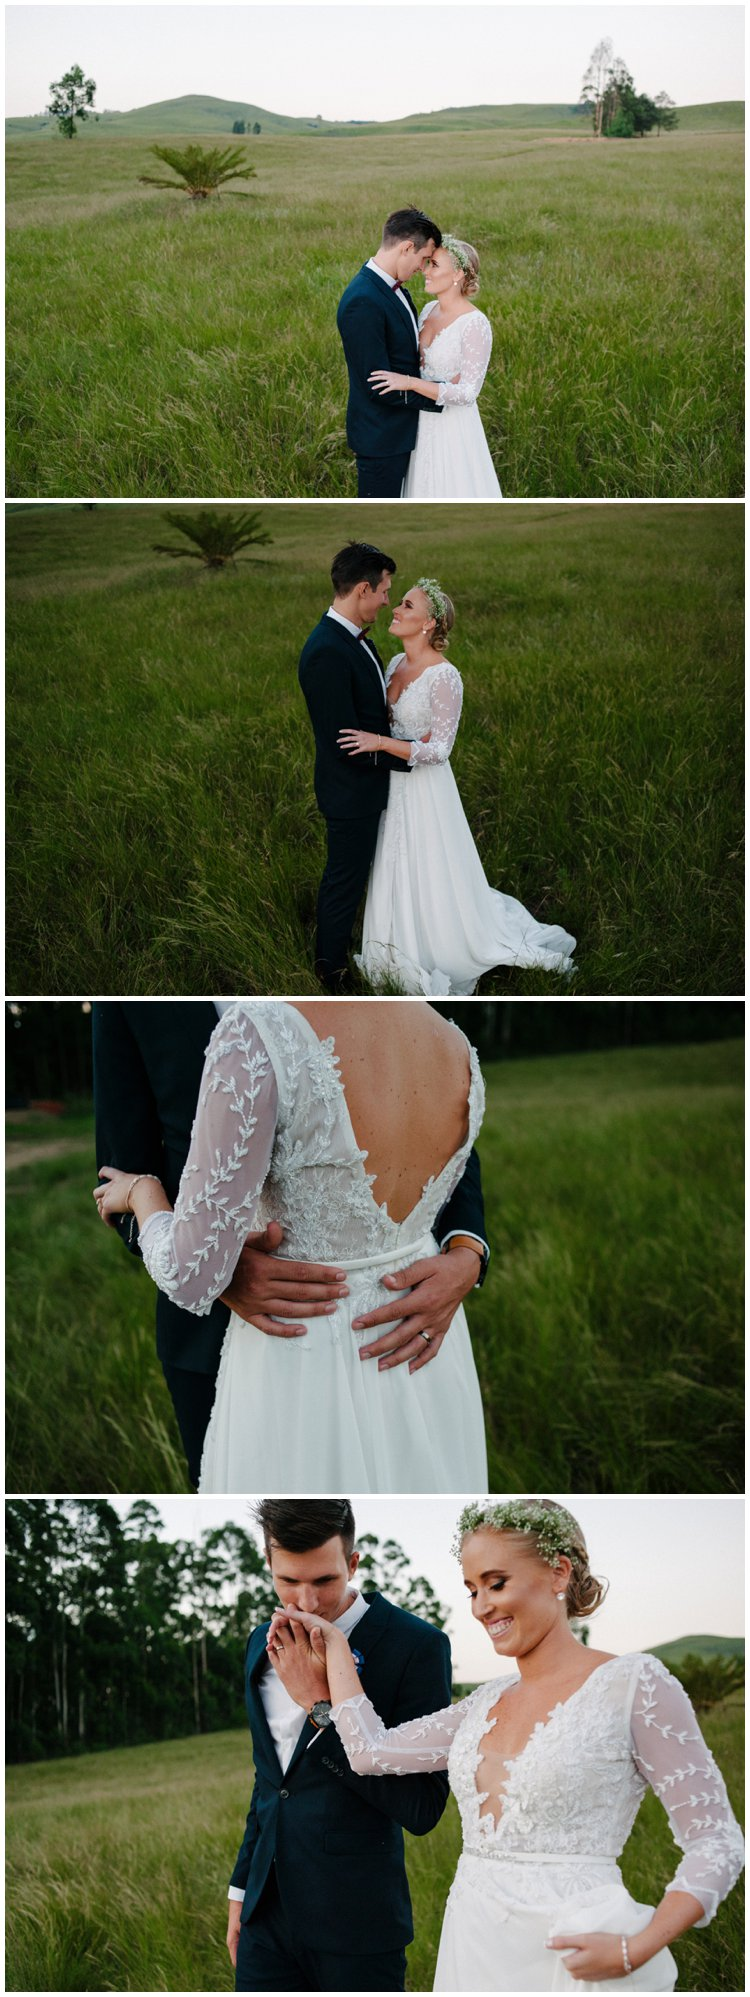 Haycroft Farm wedding, {Love} Unscripted | Warren & Lesley – Part Two of two., Casey Pratt Photography